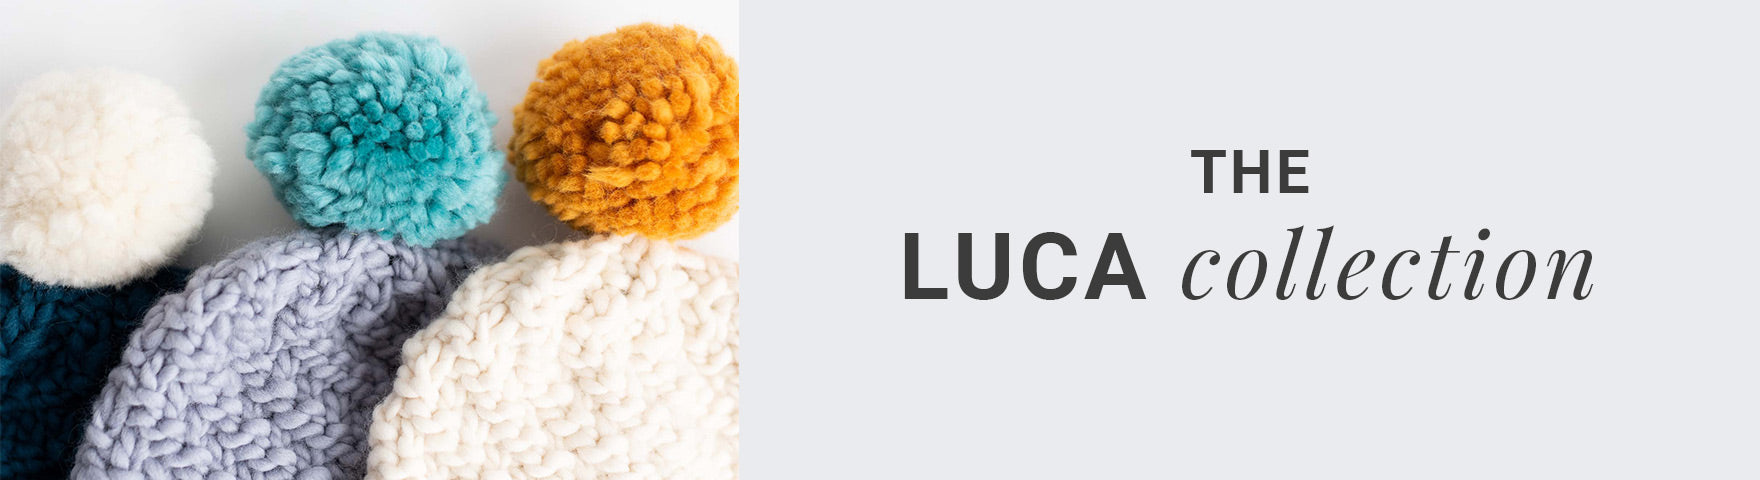 The Luca Collection | Stitch & Story